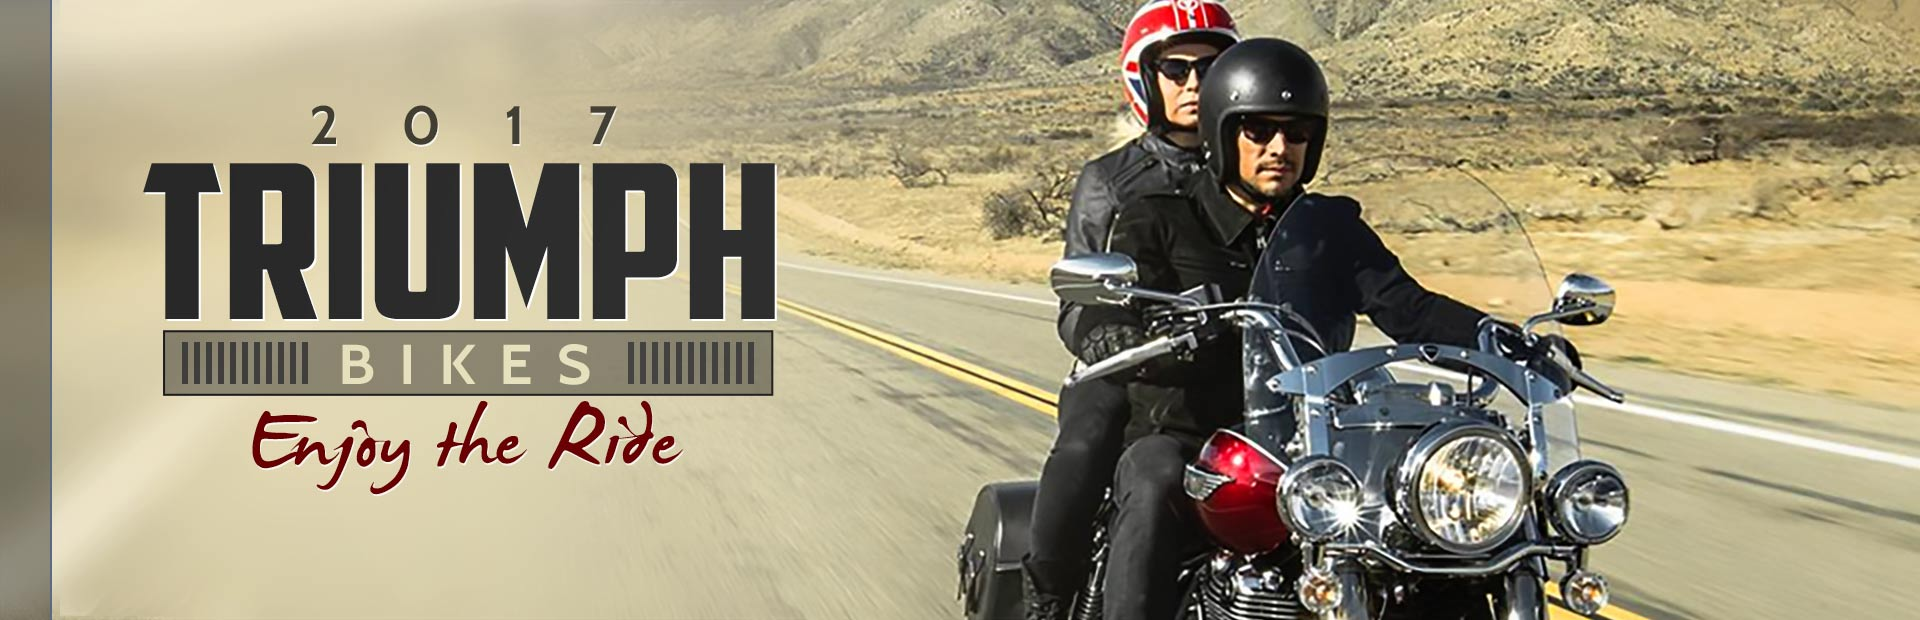 2017 Triumph Bikes: Click here to view the models.